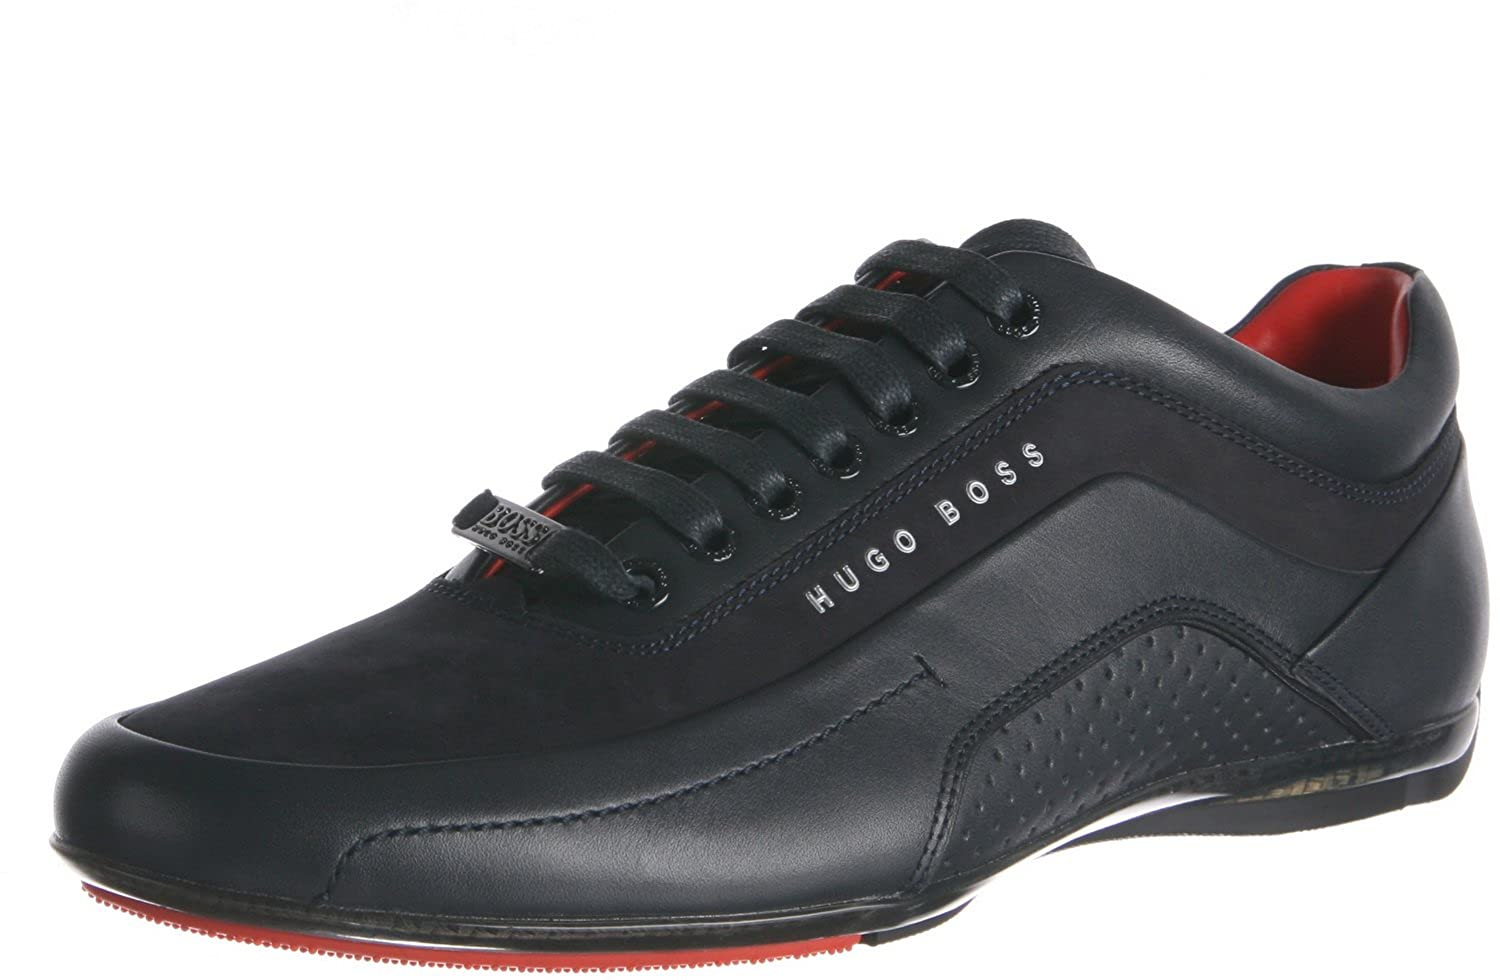 factory authentic 100% high quality cheapest price Hugo Boss Men HB Racing Sneakers Shoes